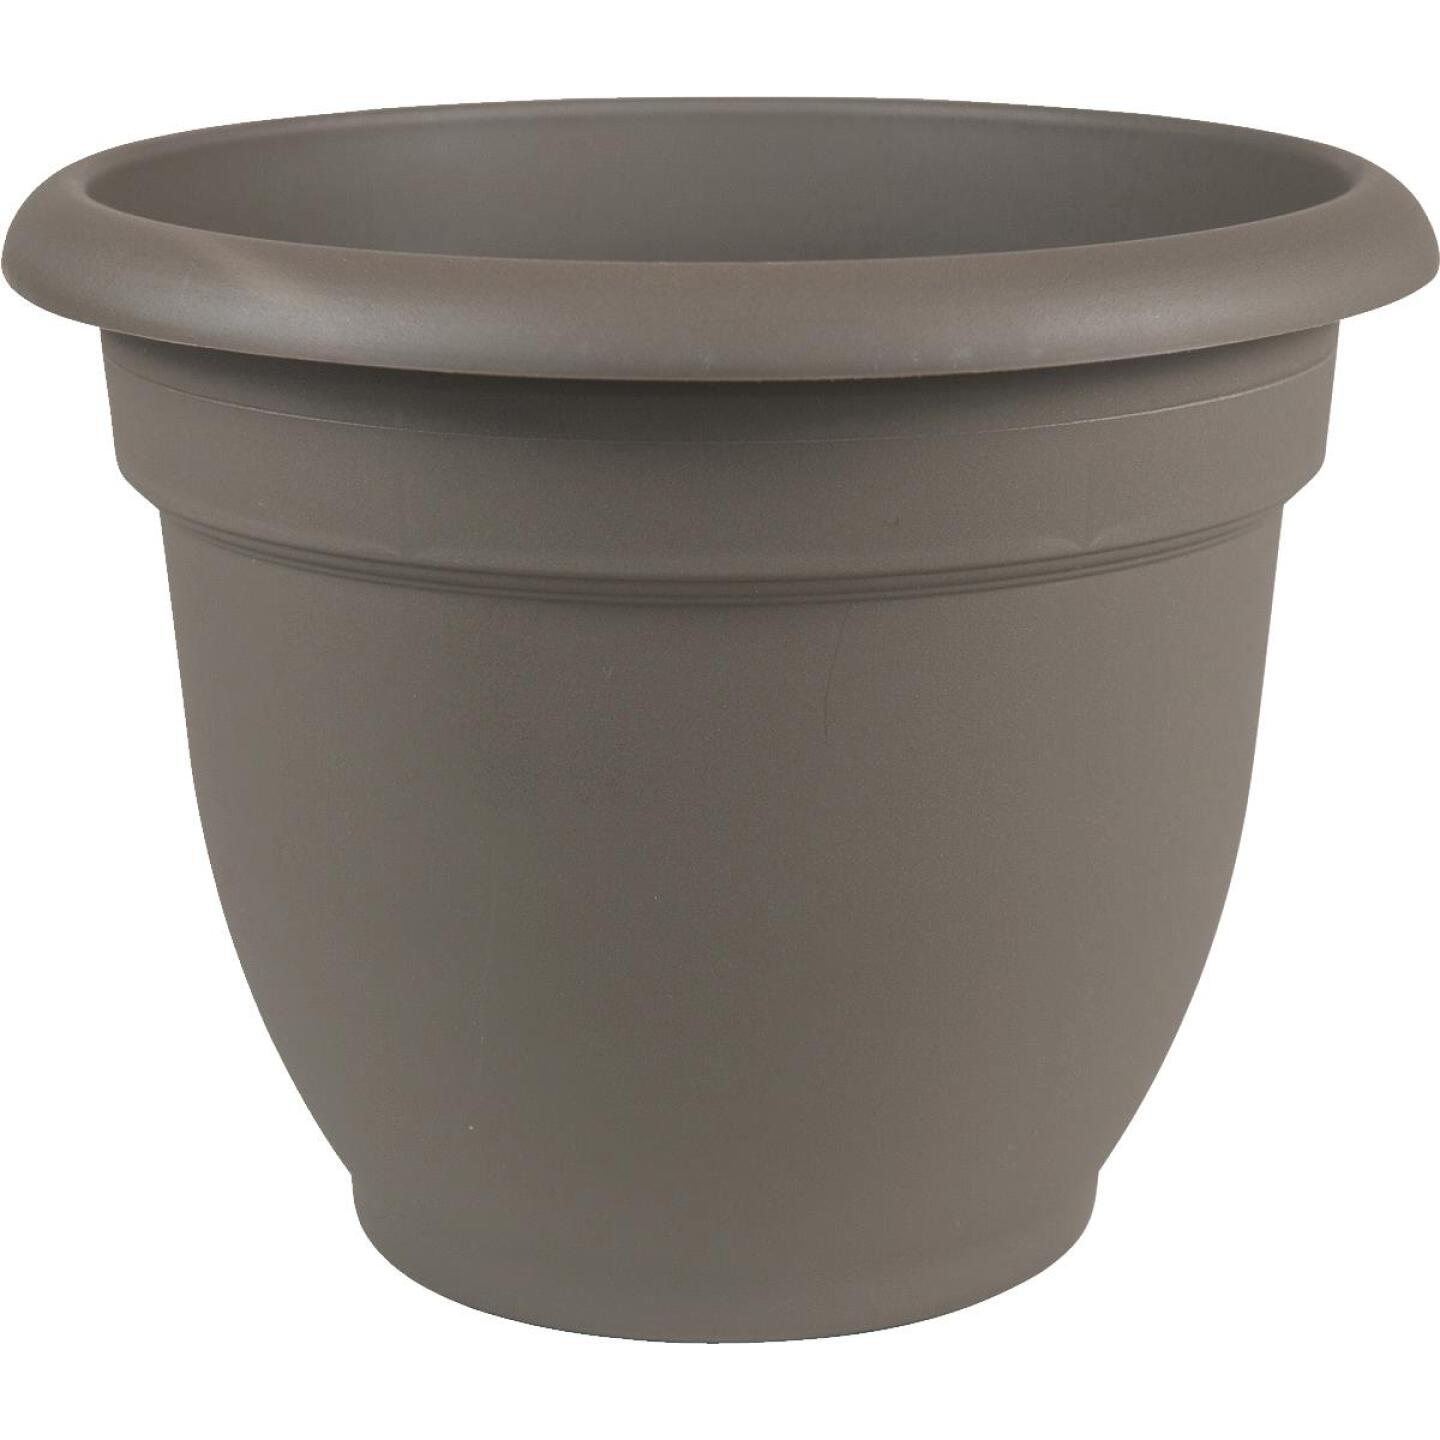 Bloem Ariana 8.8 In. H x 8 In. Dia. Plastic Self Watering Charcoal Planter Image 1